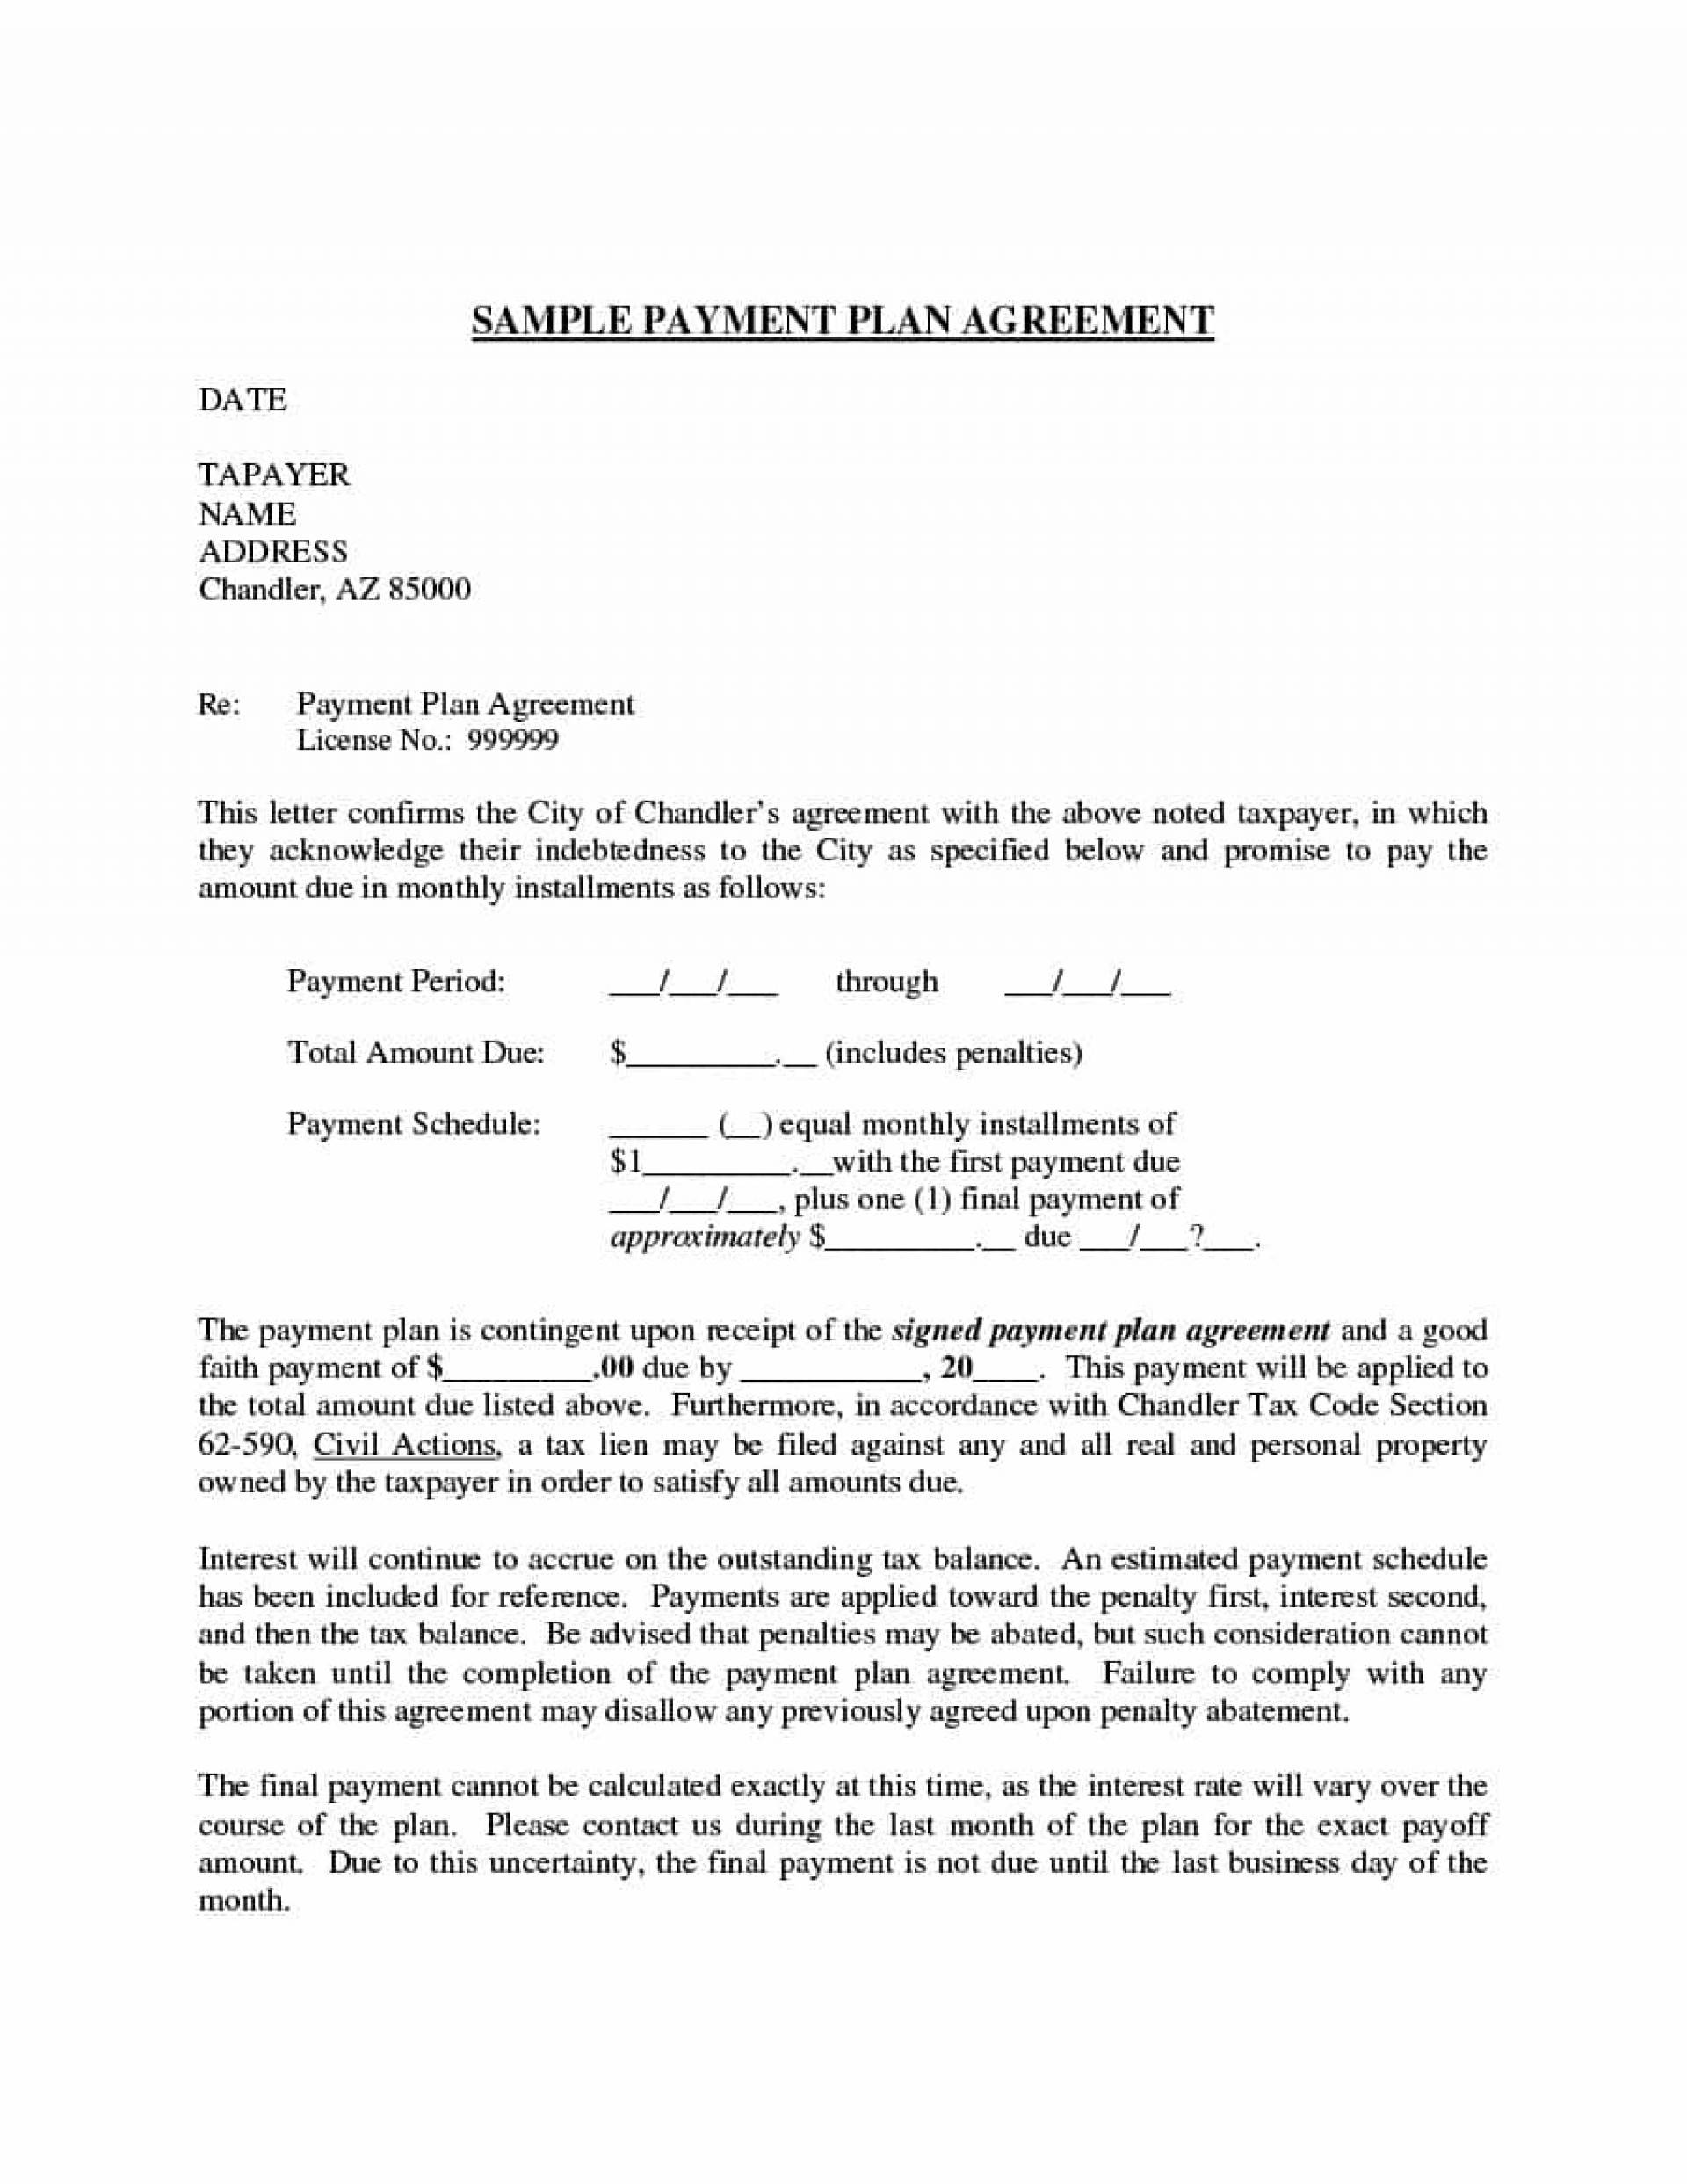 Installment Payment Agreement Template Australia